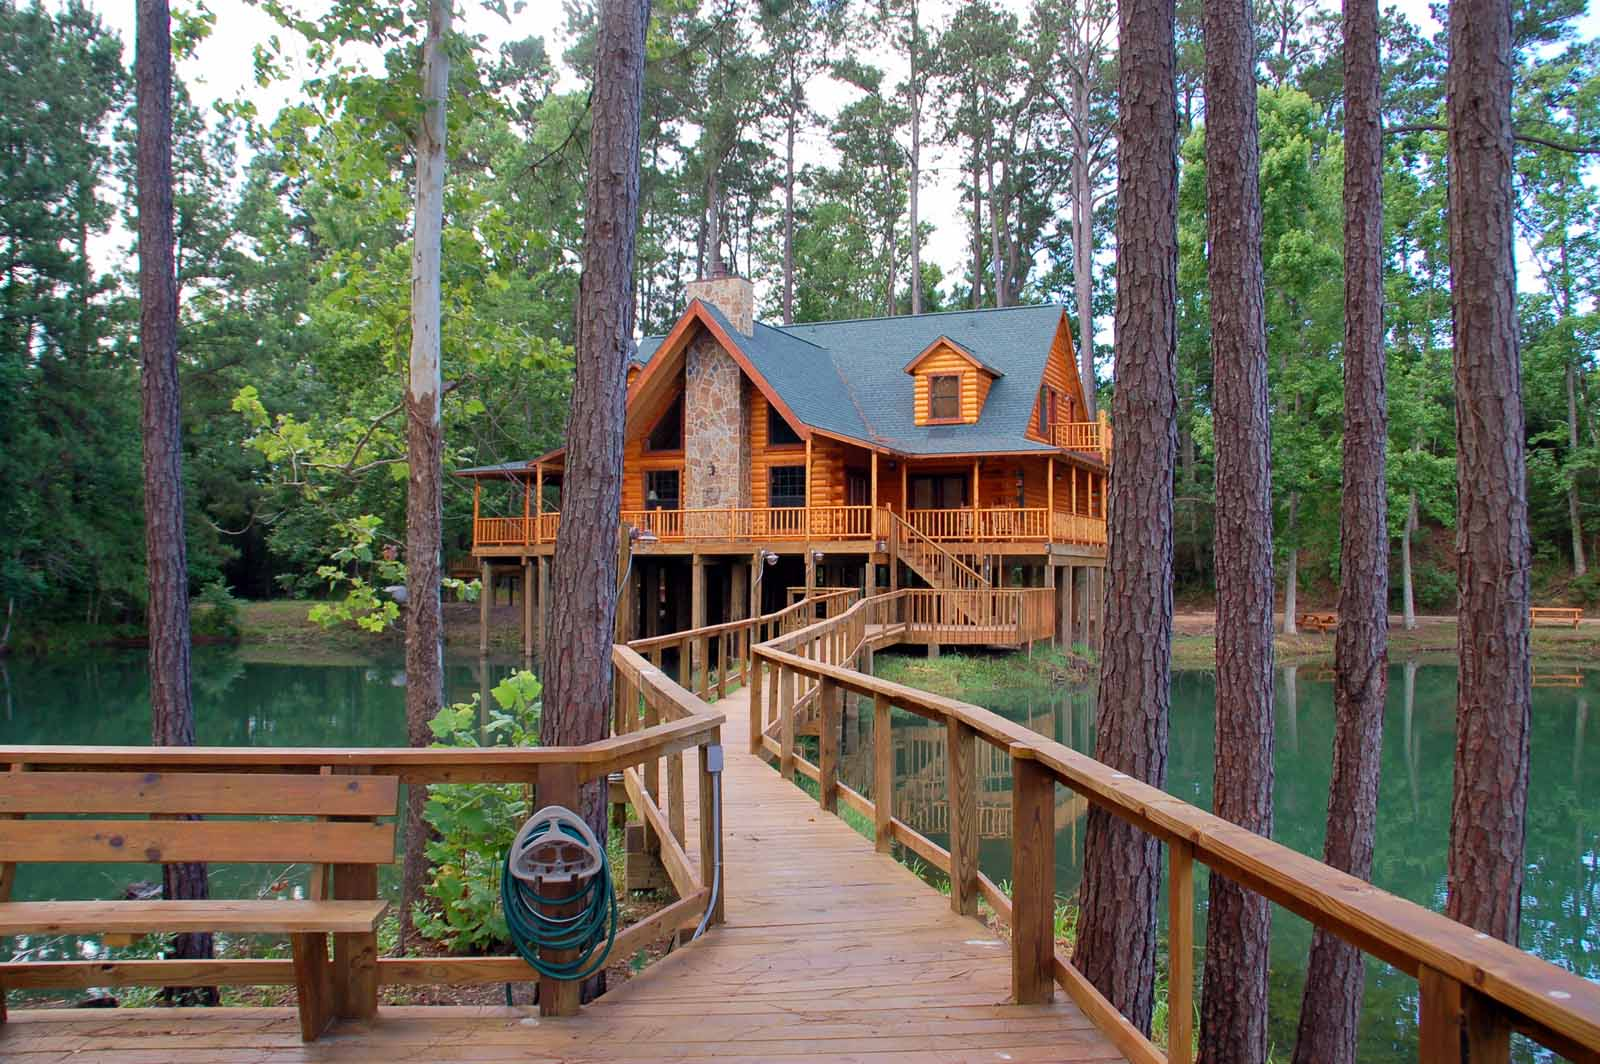 The retreat at artesian lakes log cabin rentals on the Texas cabins in the woods